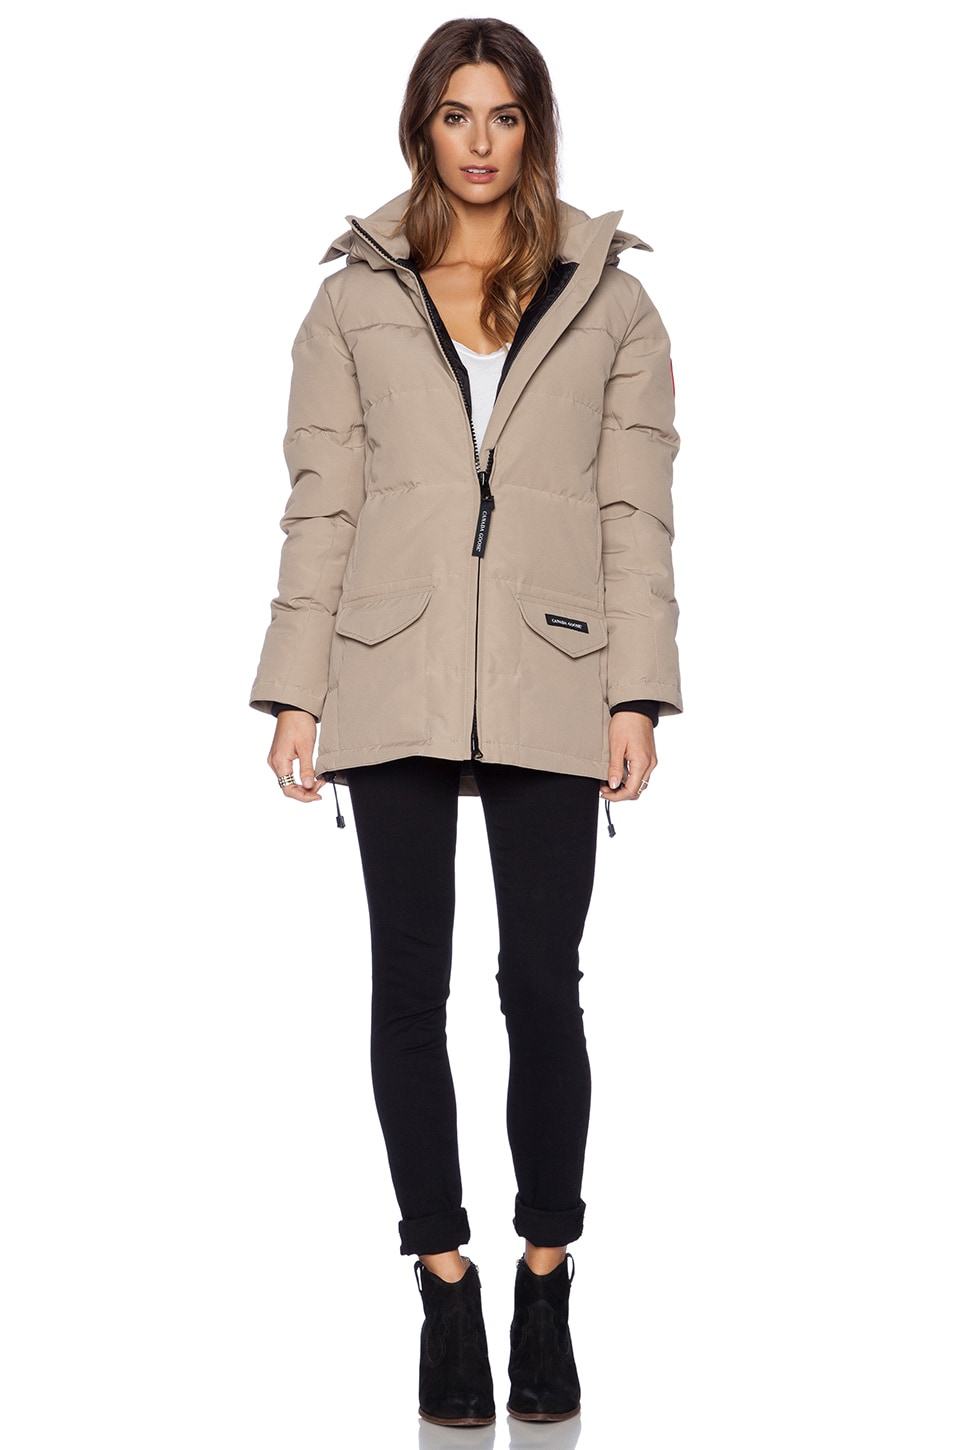 Which Stores Sell Canada Goose Jackets